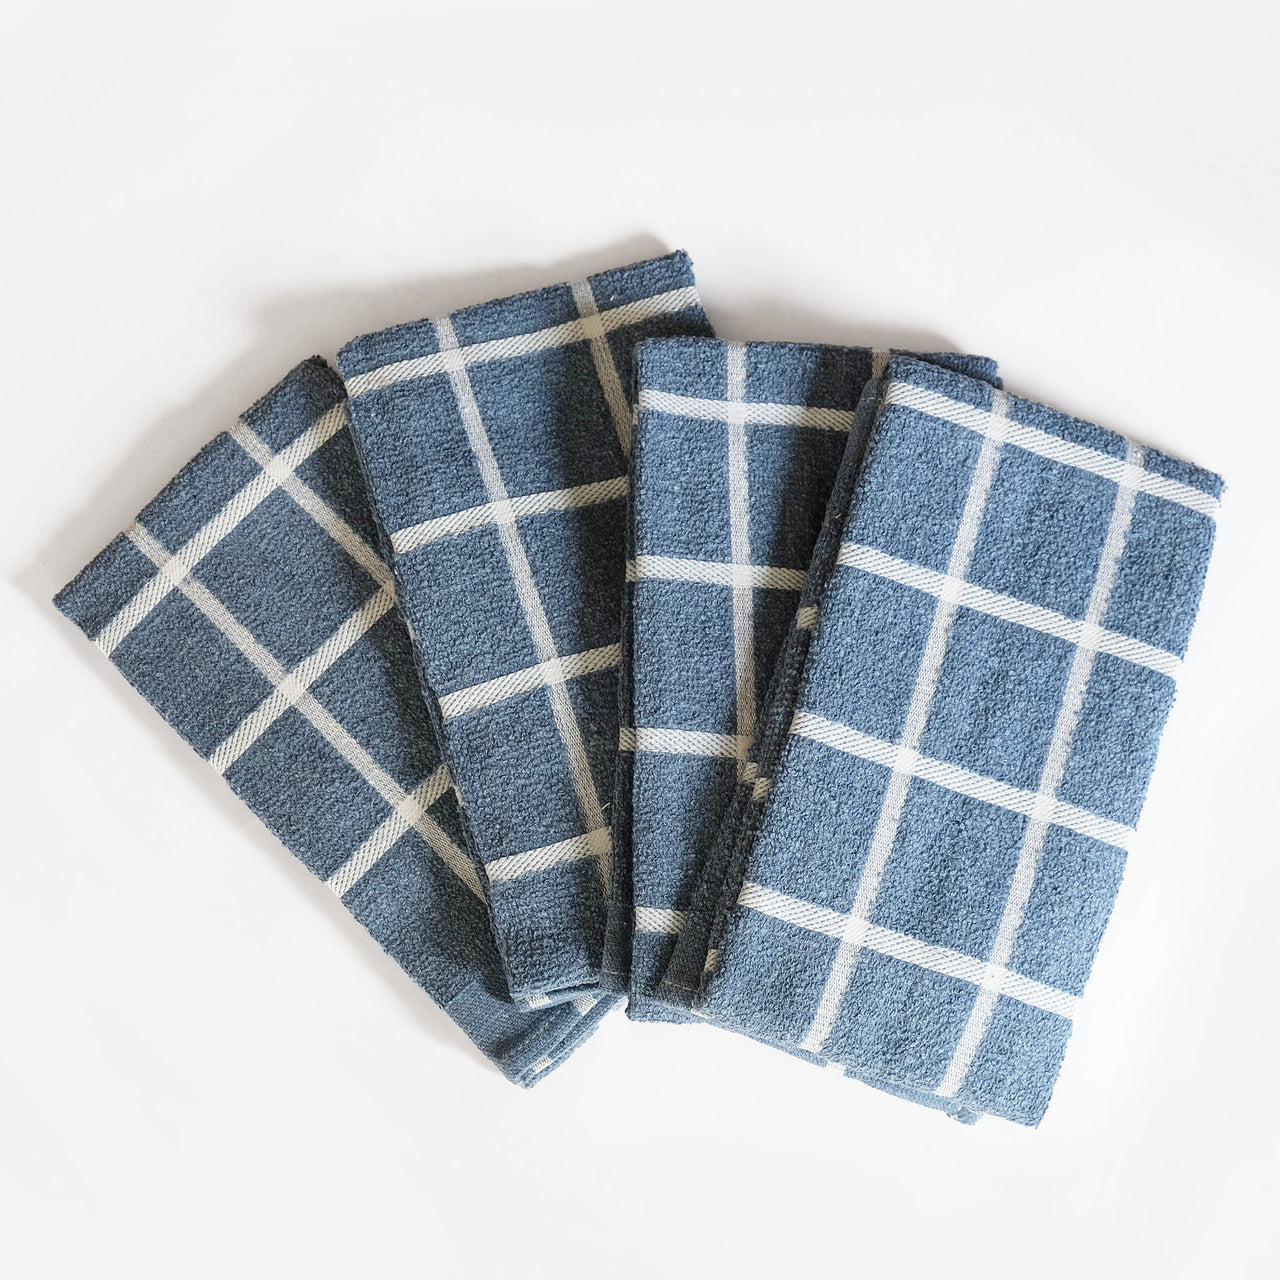 Upcycled Kitchen Towels (4-pack)